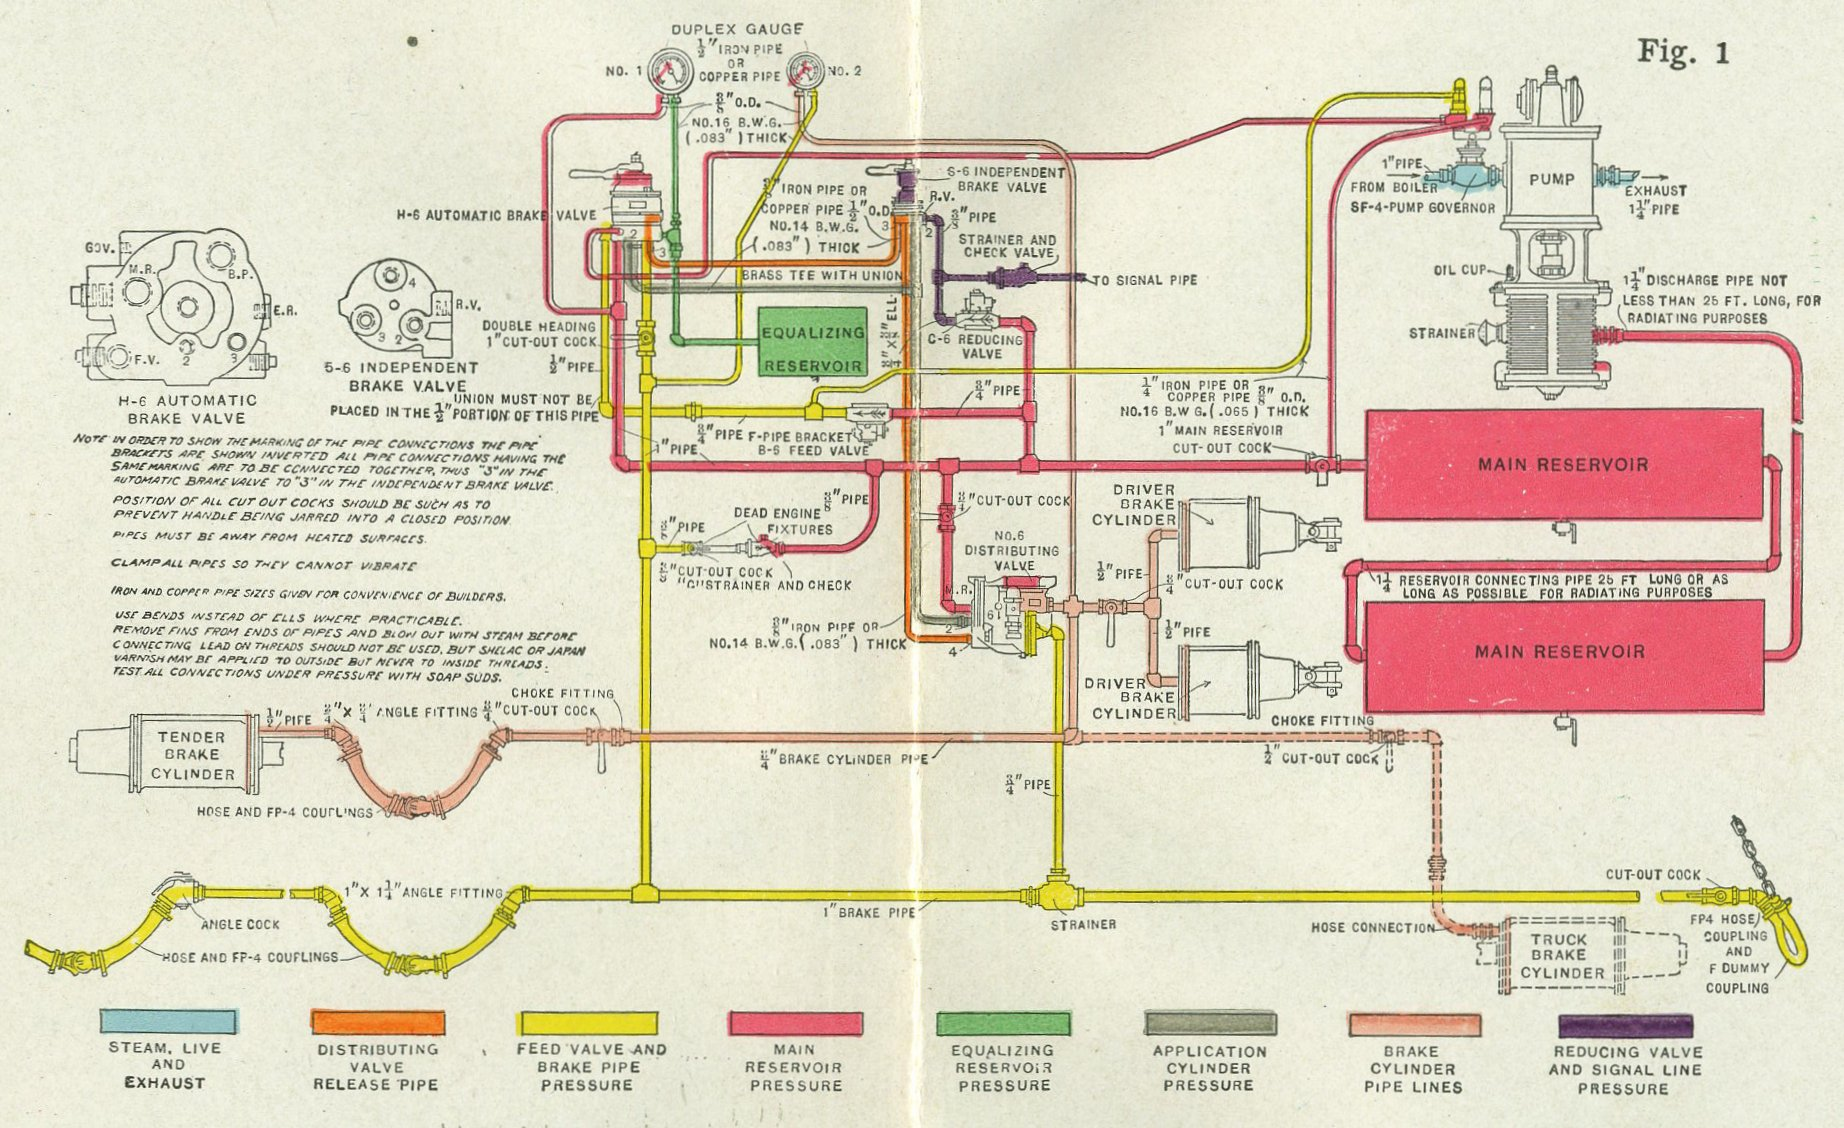 WRG-1822] Wabco Air Suspension Wiring Diagram on